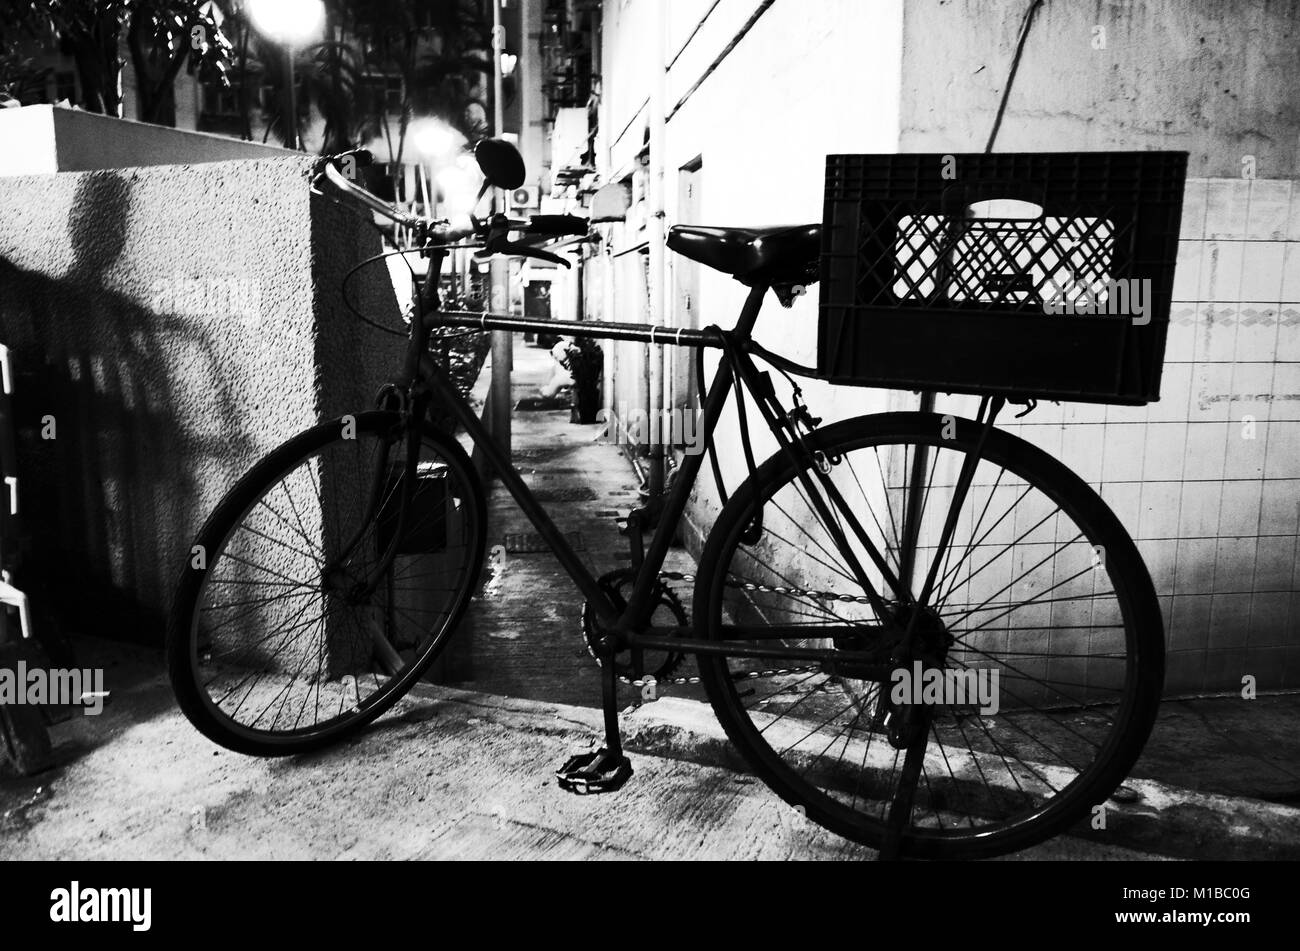 A typical Hong Kong style bike parked outside an apartment building - Stock Image